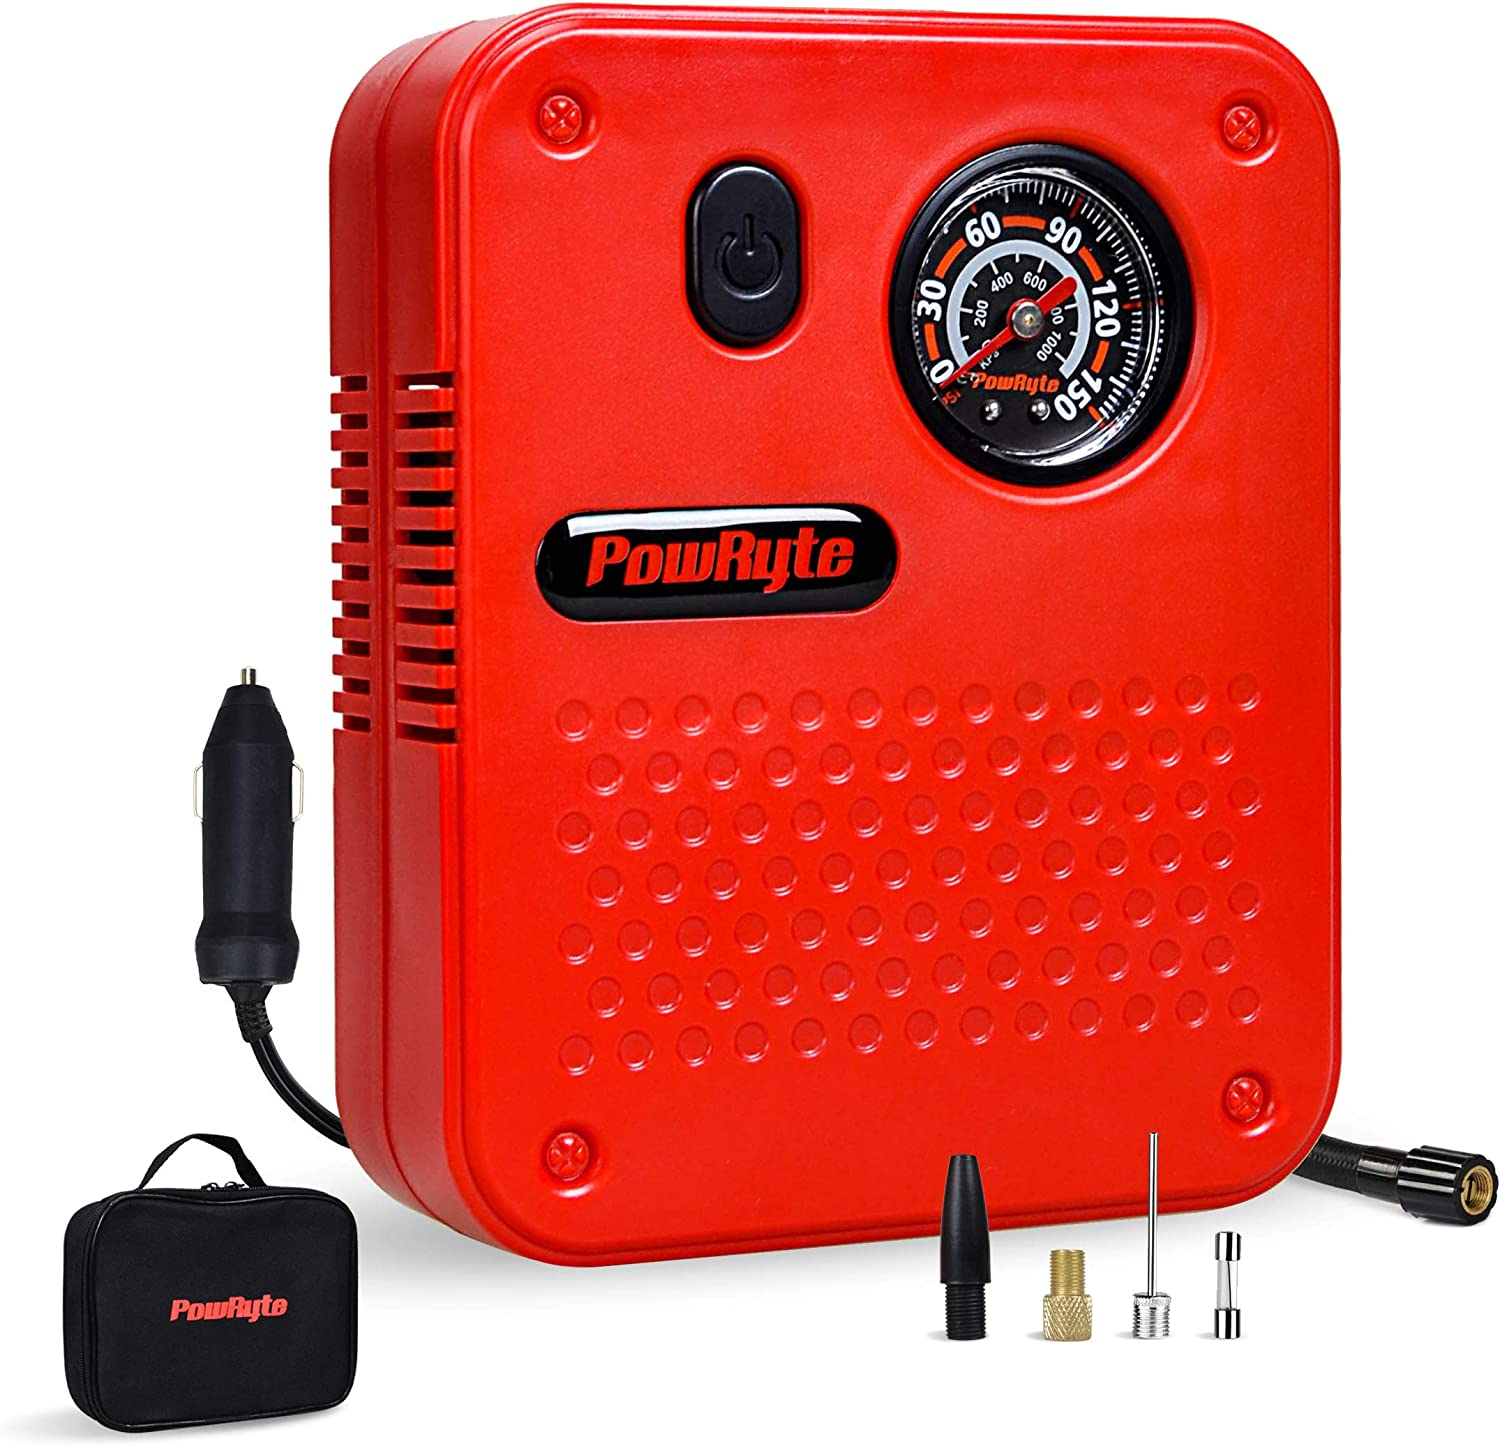 PowRyte Works Dial Tire Inflator - 12-Volt Portable Auto Air Compressor with Precise Pressure Gauge